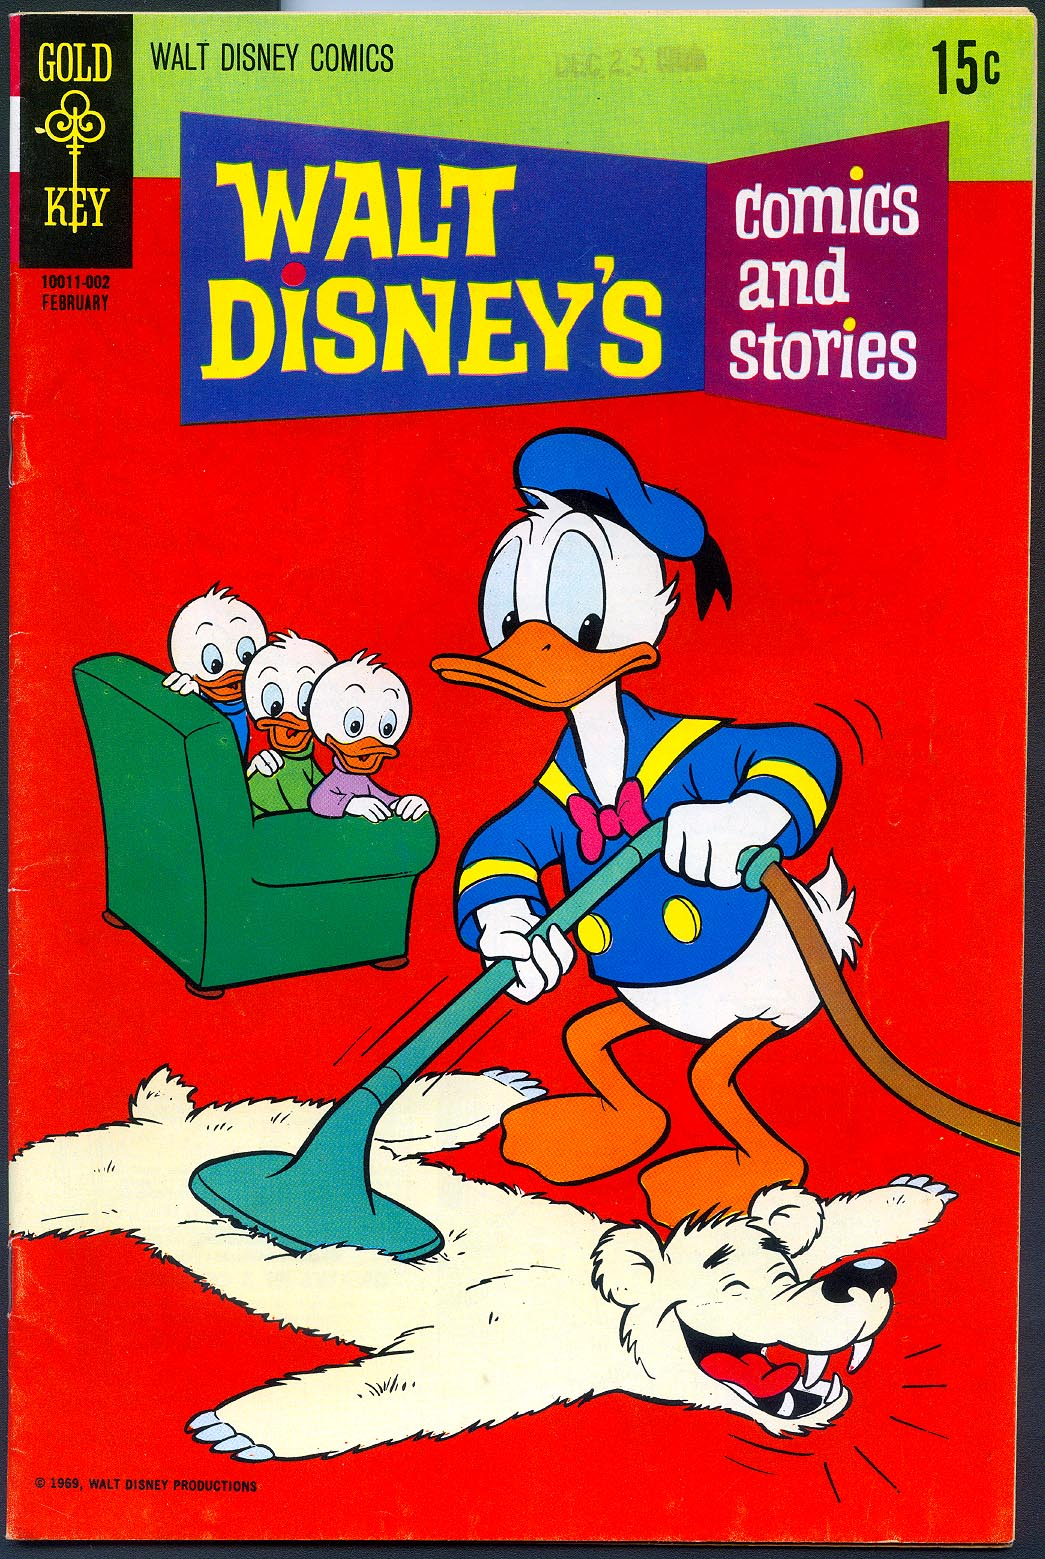 Walt Disneys Comics and Stories (Gold Key) 353 (Also Vol 30 - 5 ) -FVF